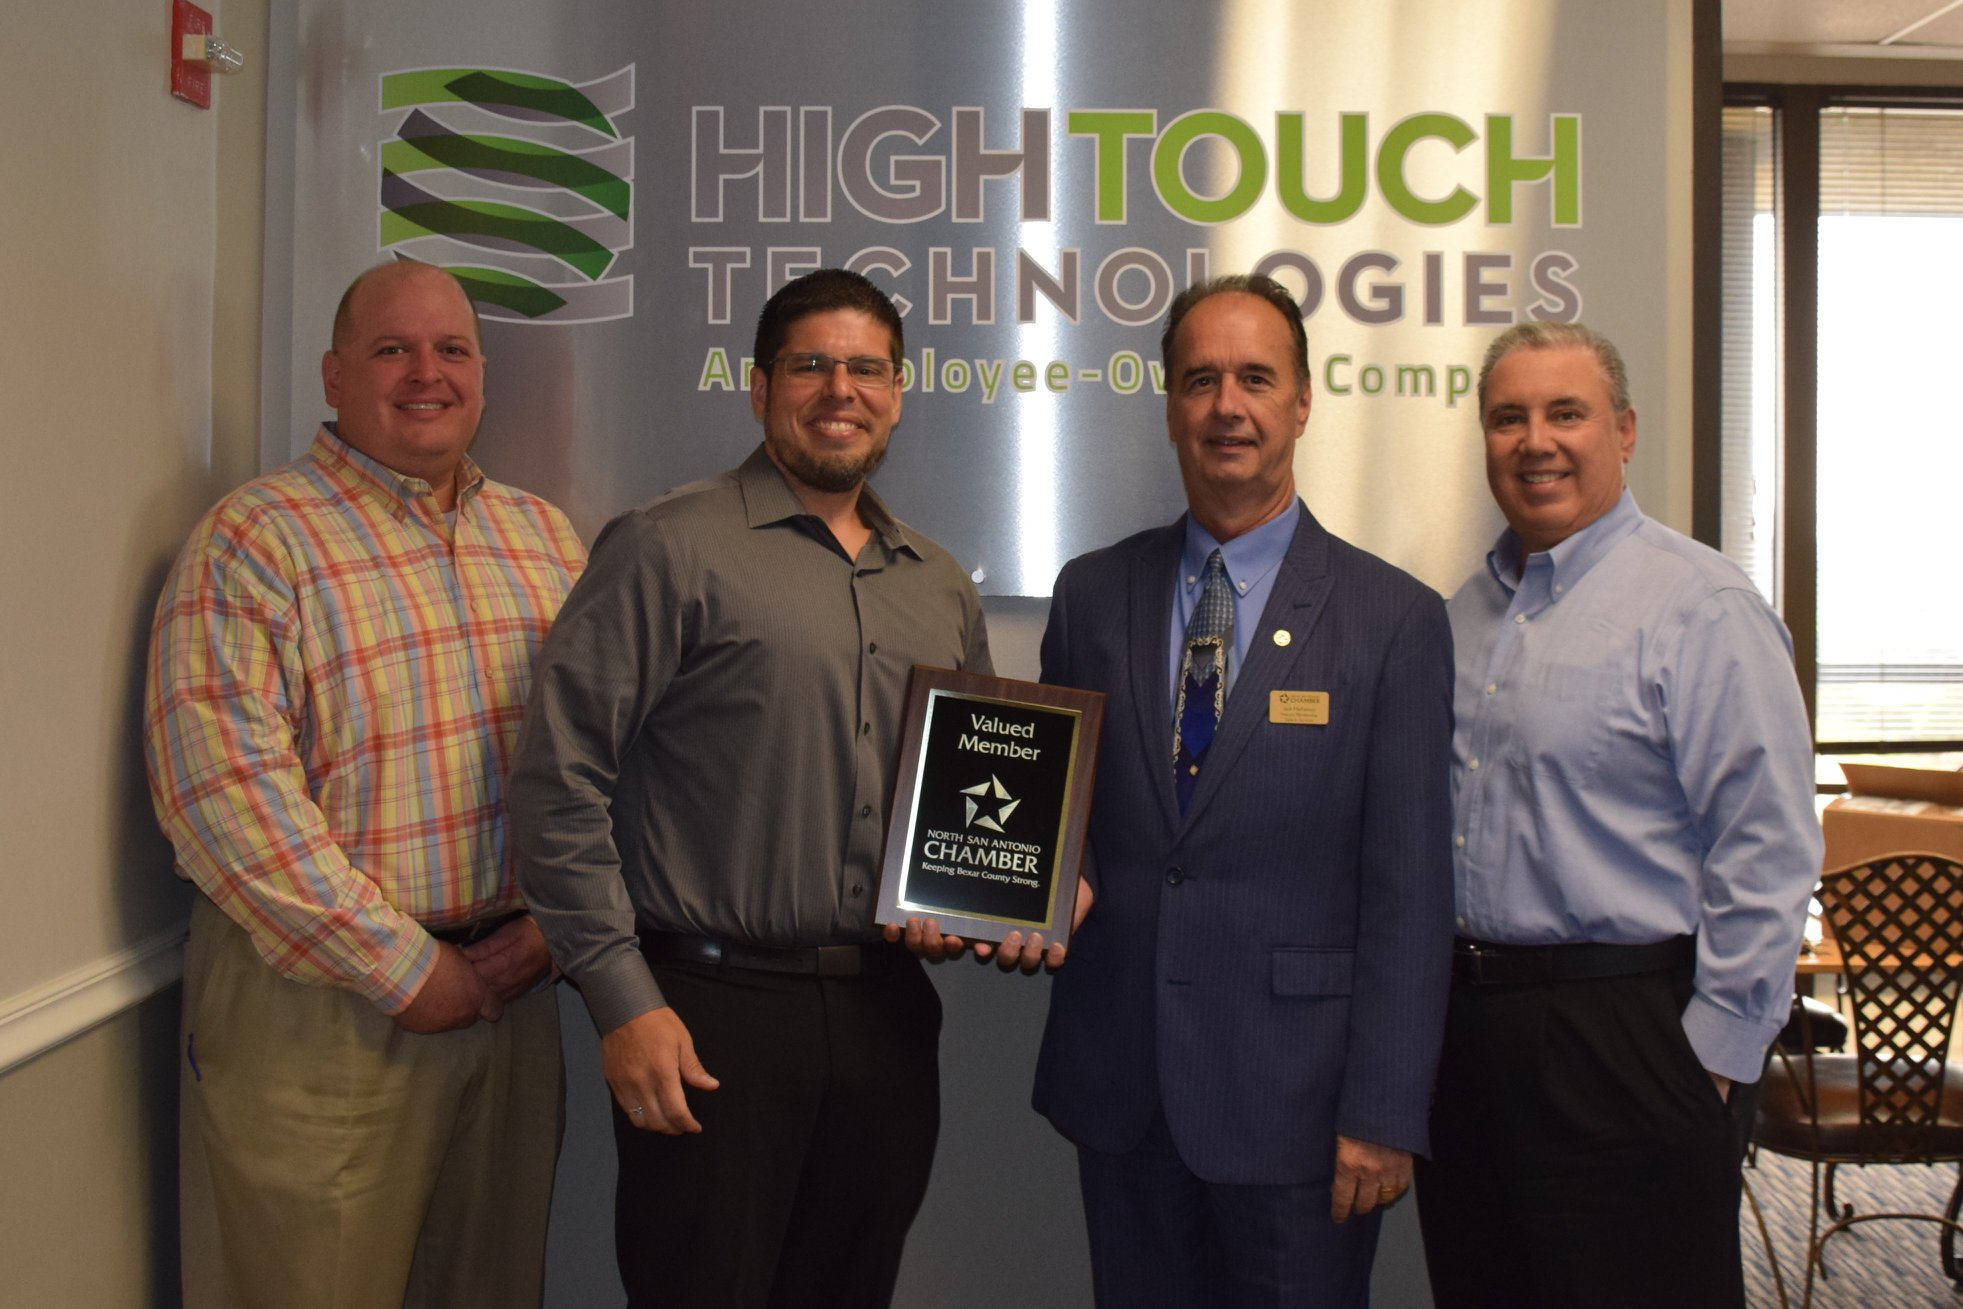 High Touch representatives with San Antonio Chamber of Commerce